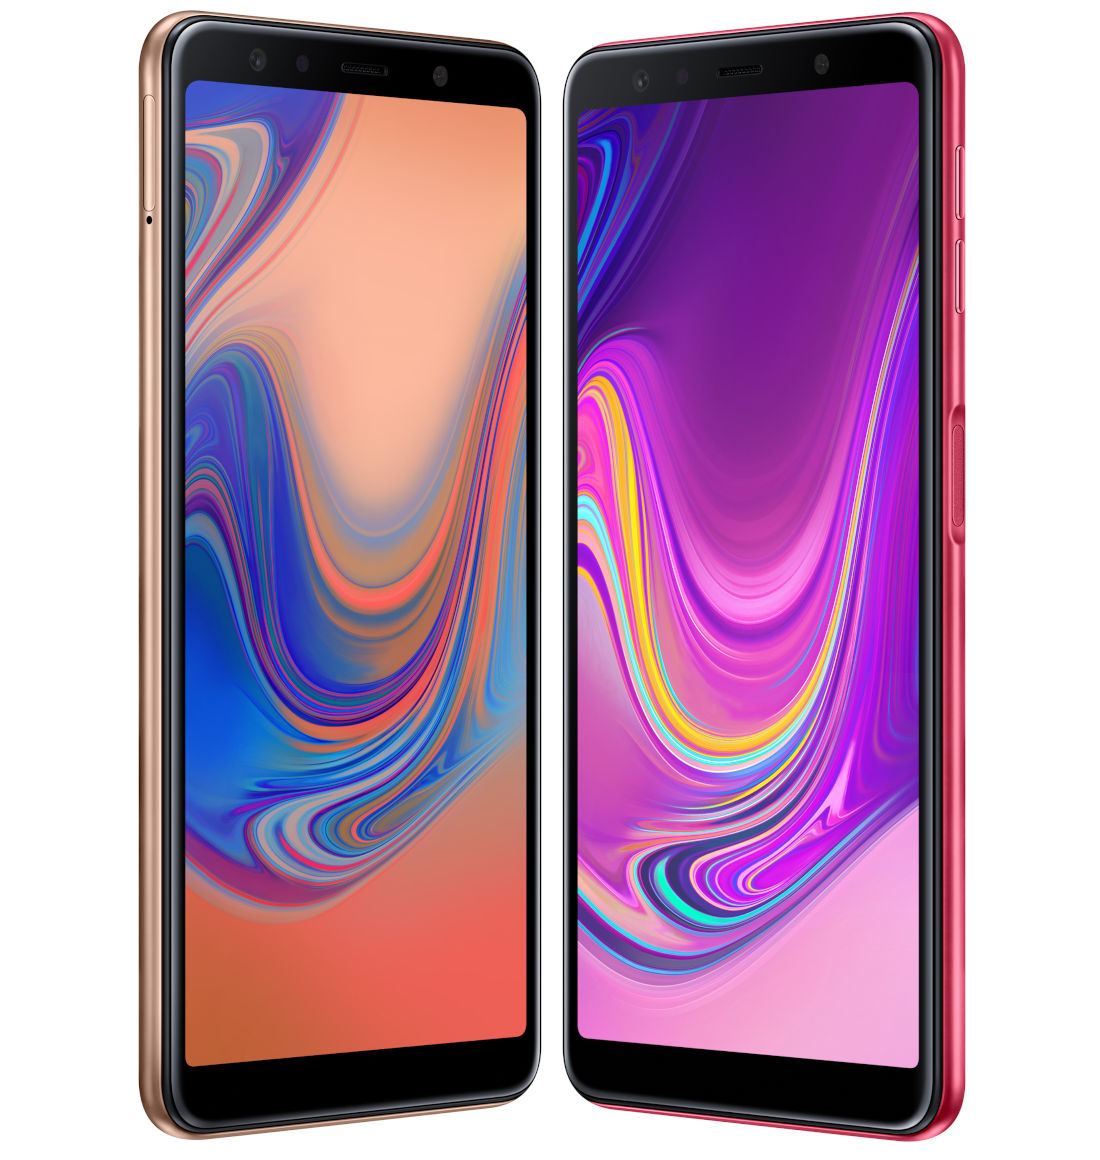 Samsung Galaxy A7 2018 Specifications